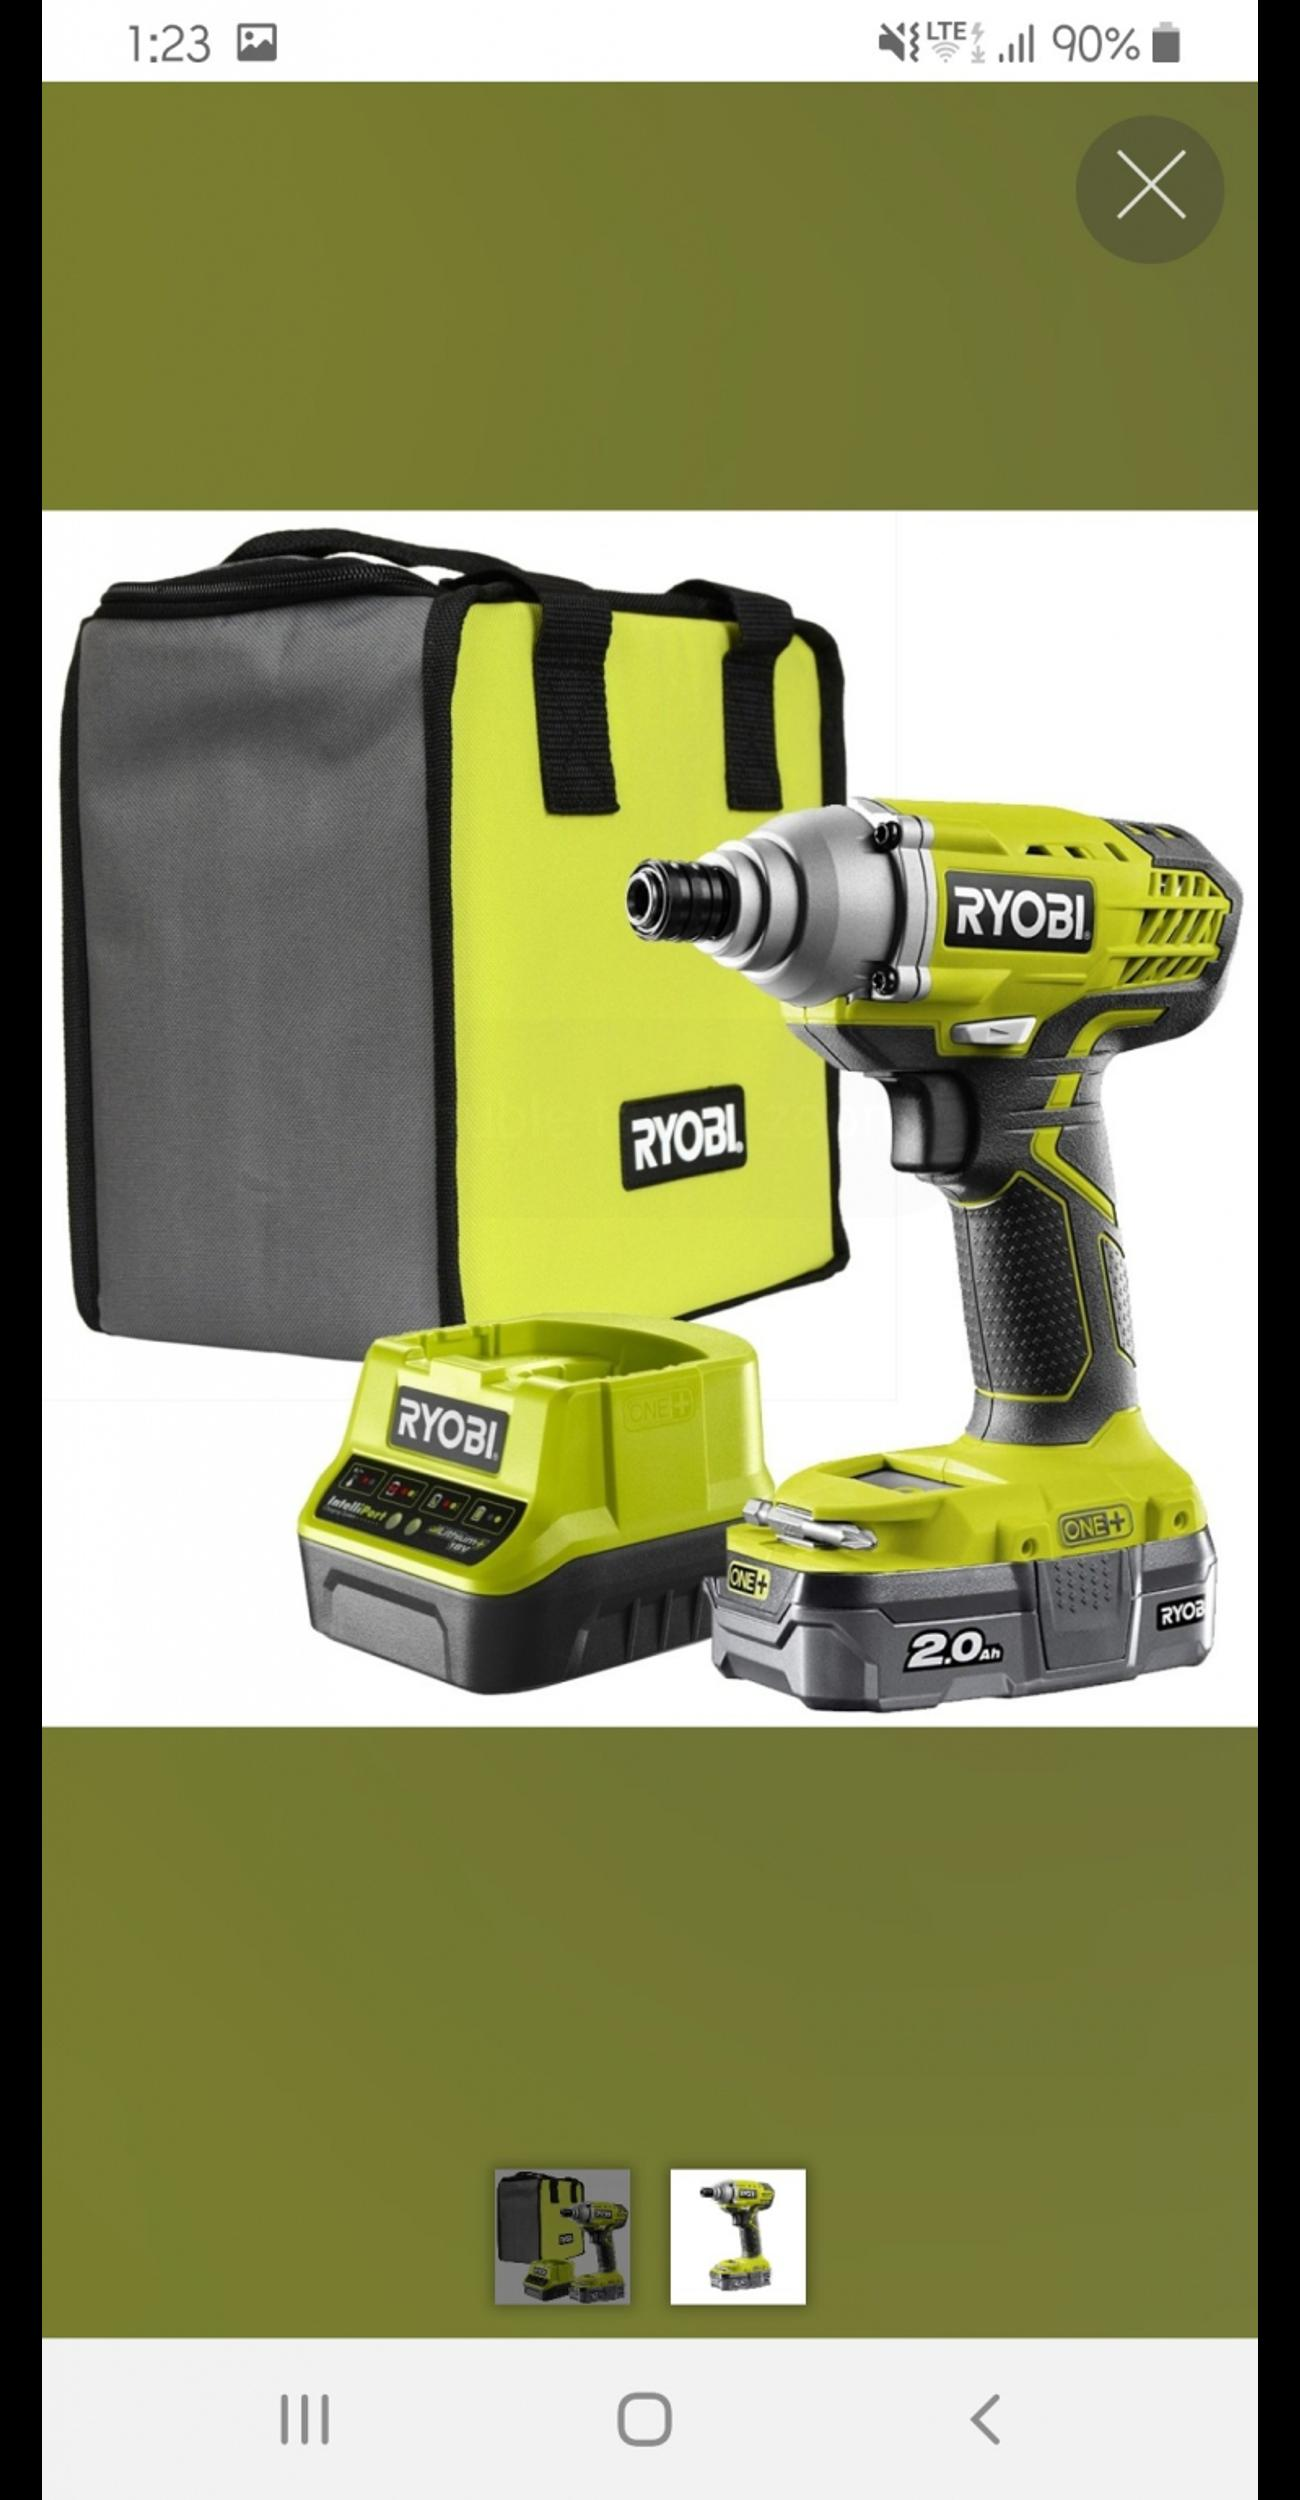 RYOBI R18IDP 18V Cordless Impact Driver Set in Clapham for